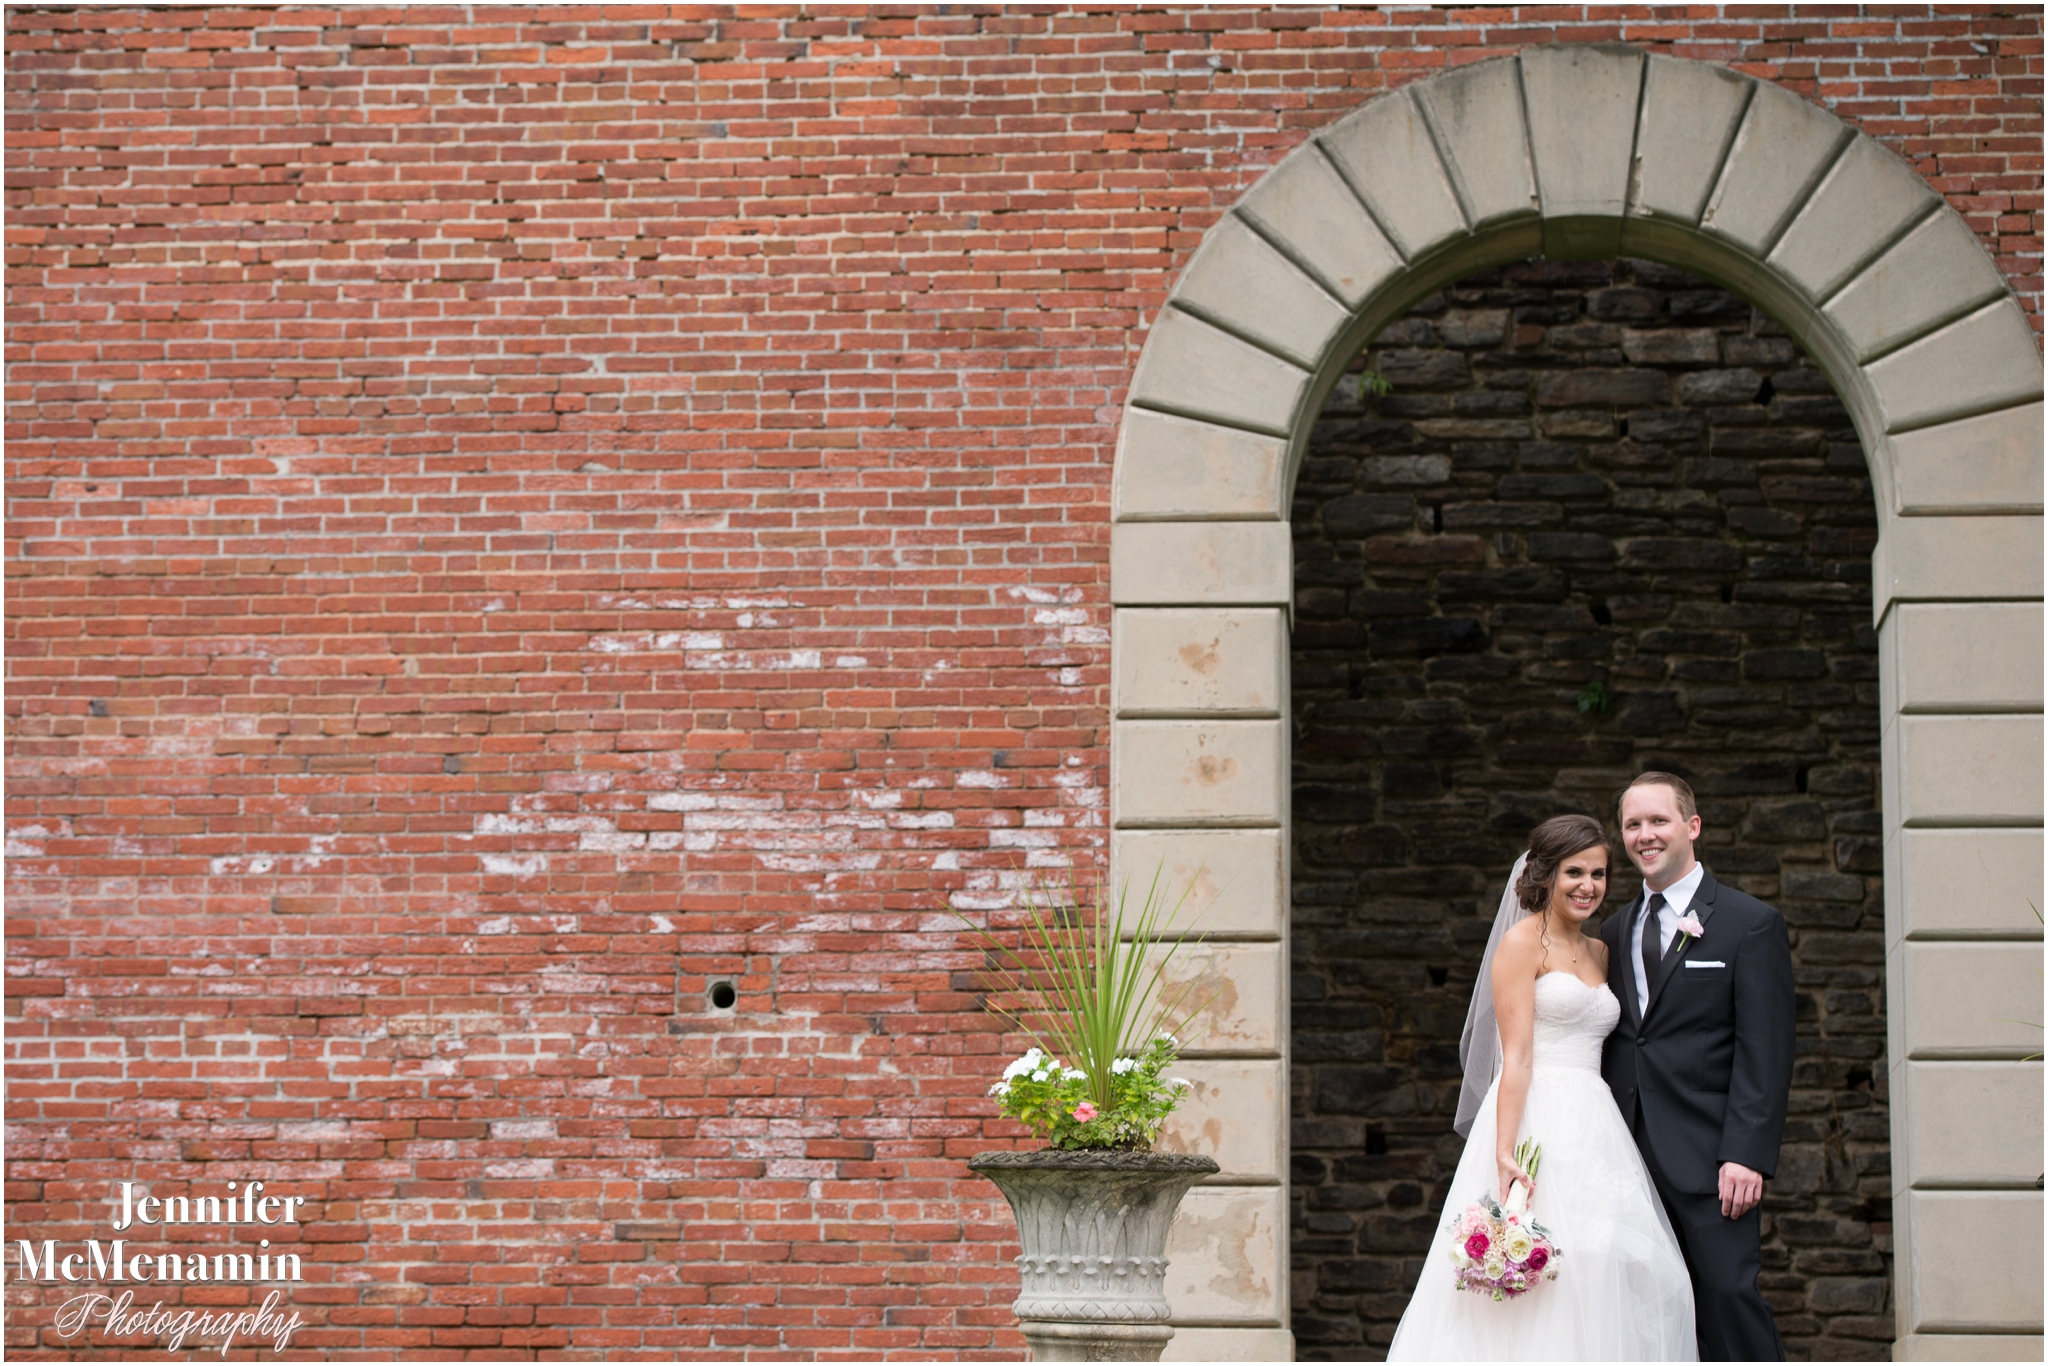 0050-BlumWilliams_02081-0390_JenniferMcMenaminPhotography_Evergreen-Museum-Carriage-House_Baltimore-wedding-photography_Baltimore-wedding-photographer